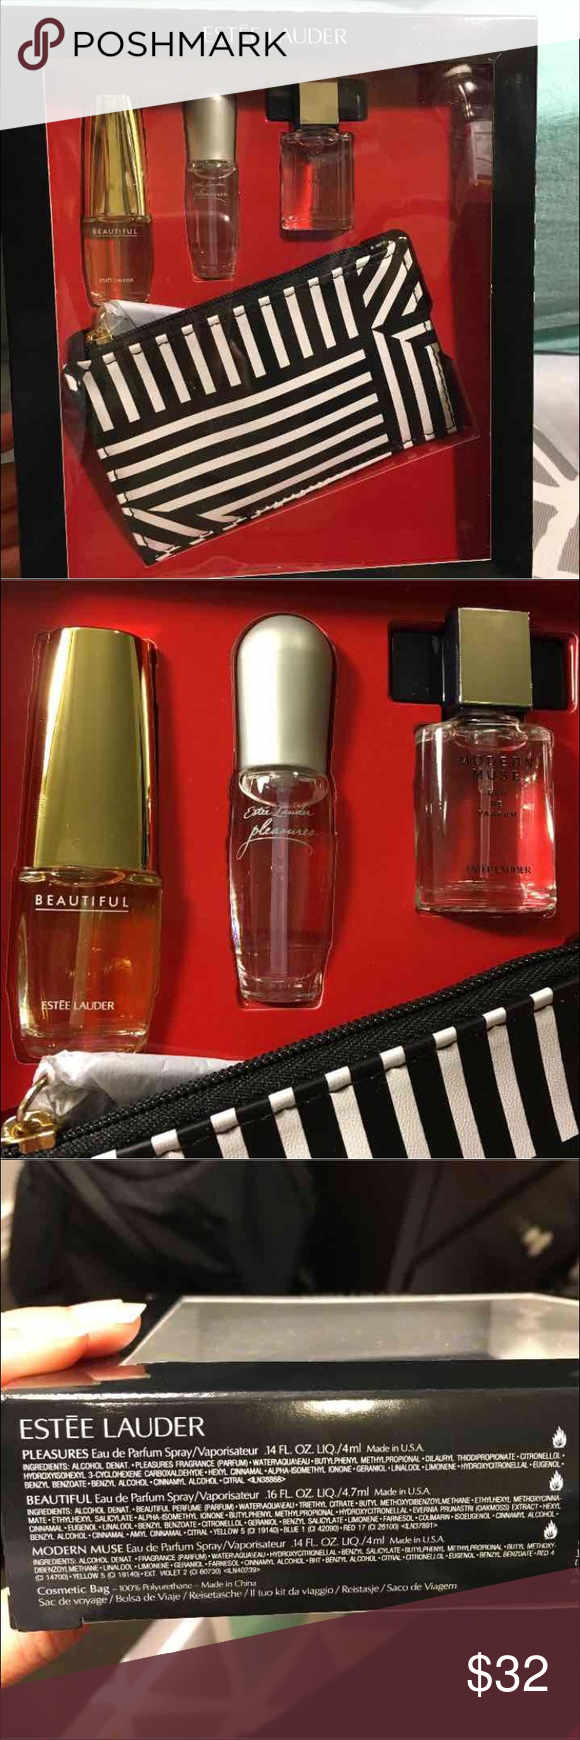 Estee Lauder Perfume Gift Set Brand New In Box Gift Set Retail Value Over 40 Includes A Cosmetic Bag And Perfume Gift Sets Estee Lauder Perfume Modern Muse